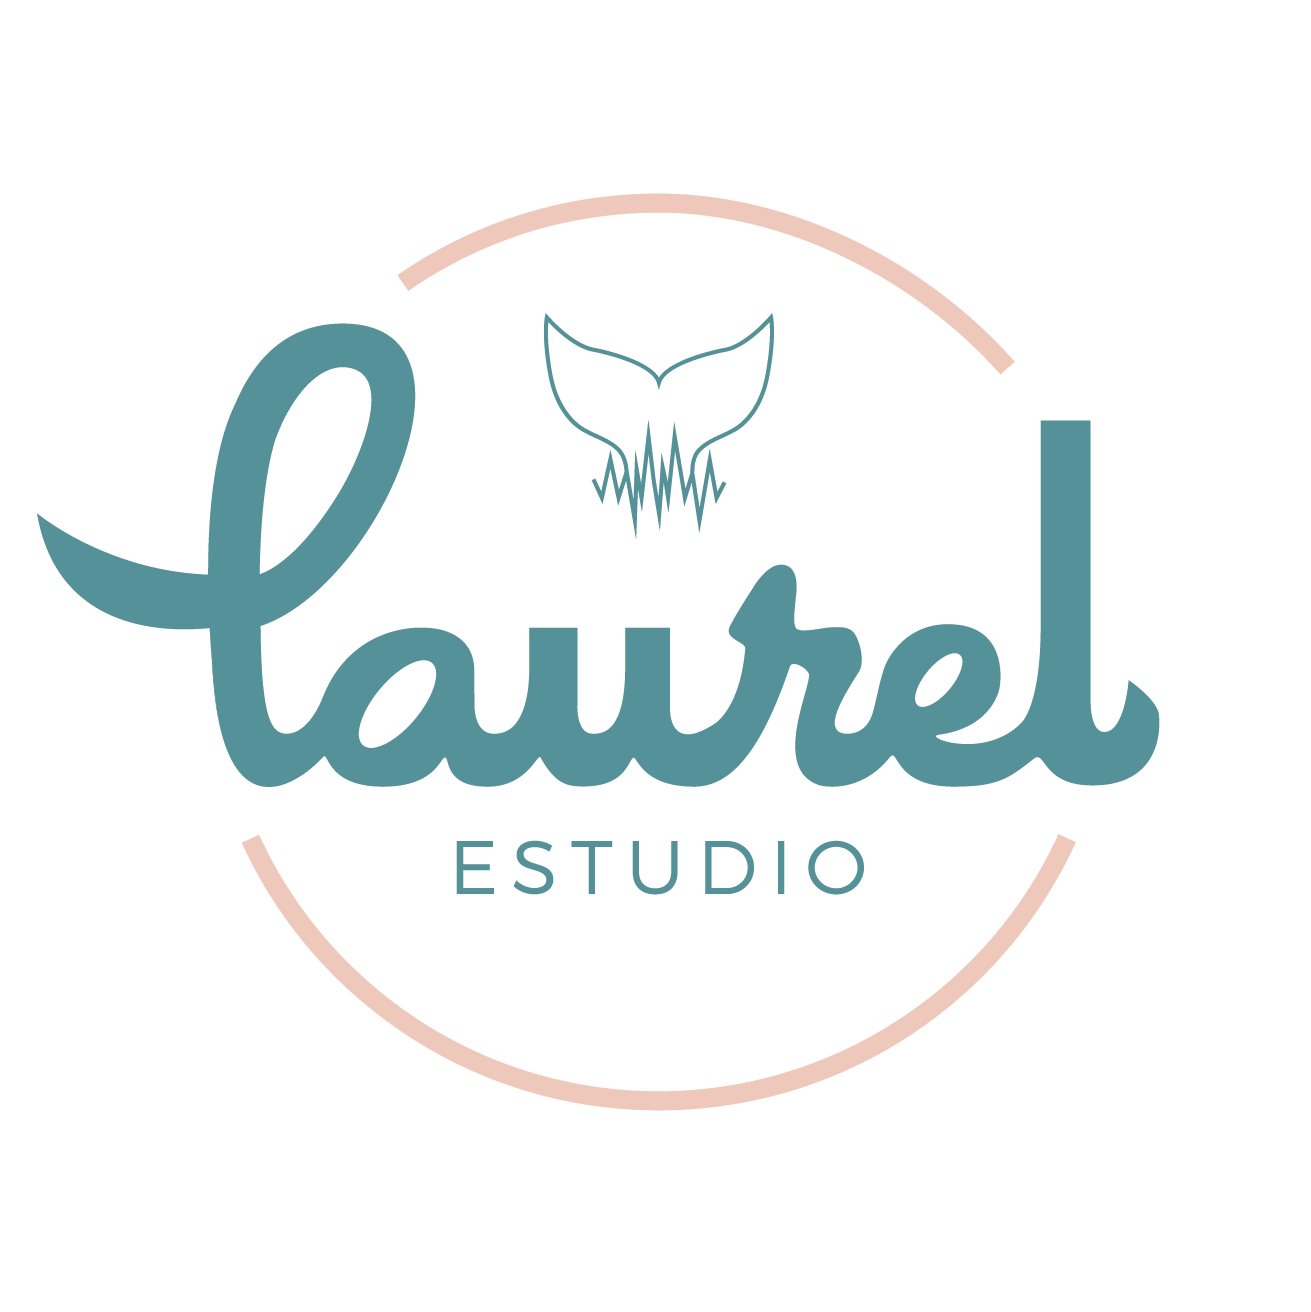 Laurel Estudio